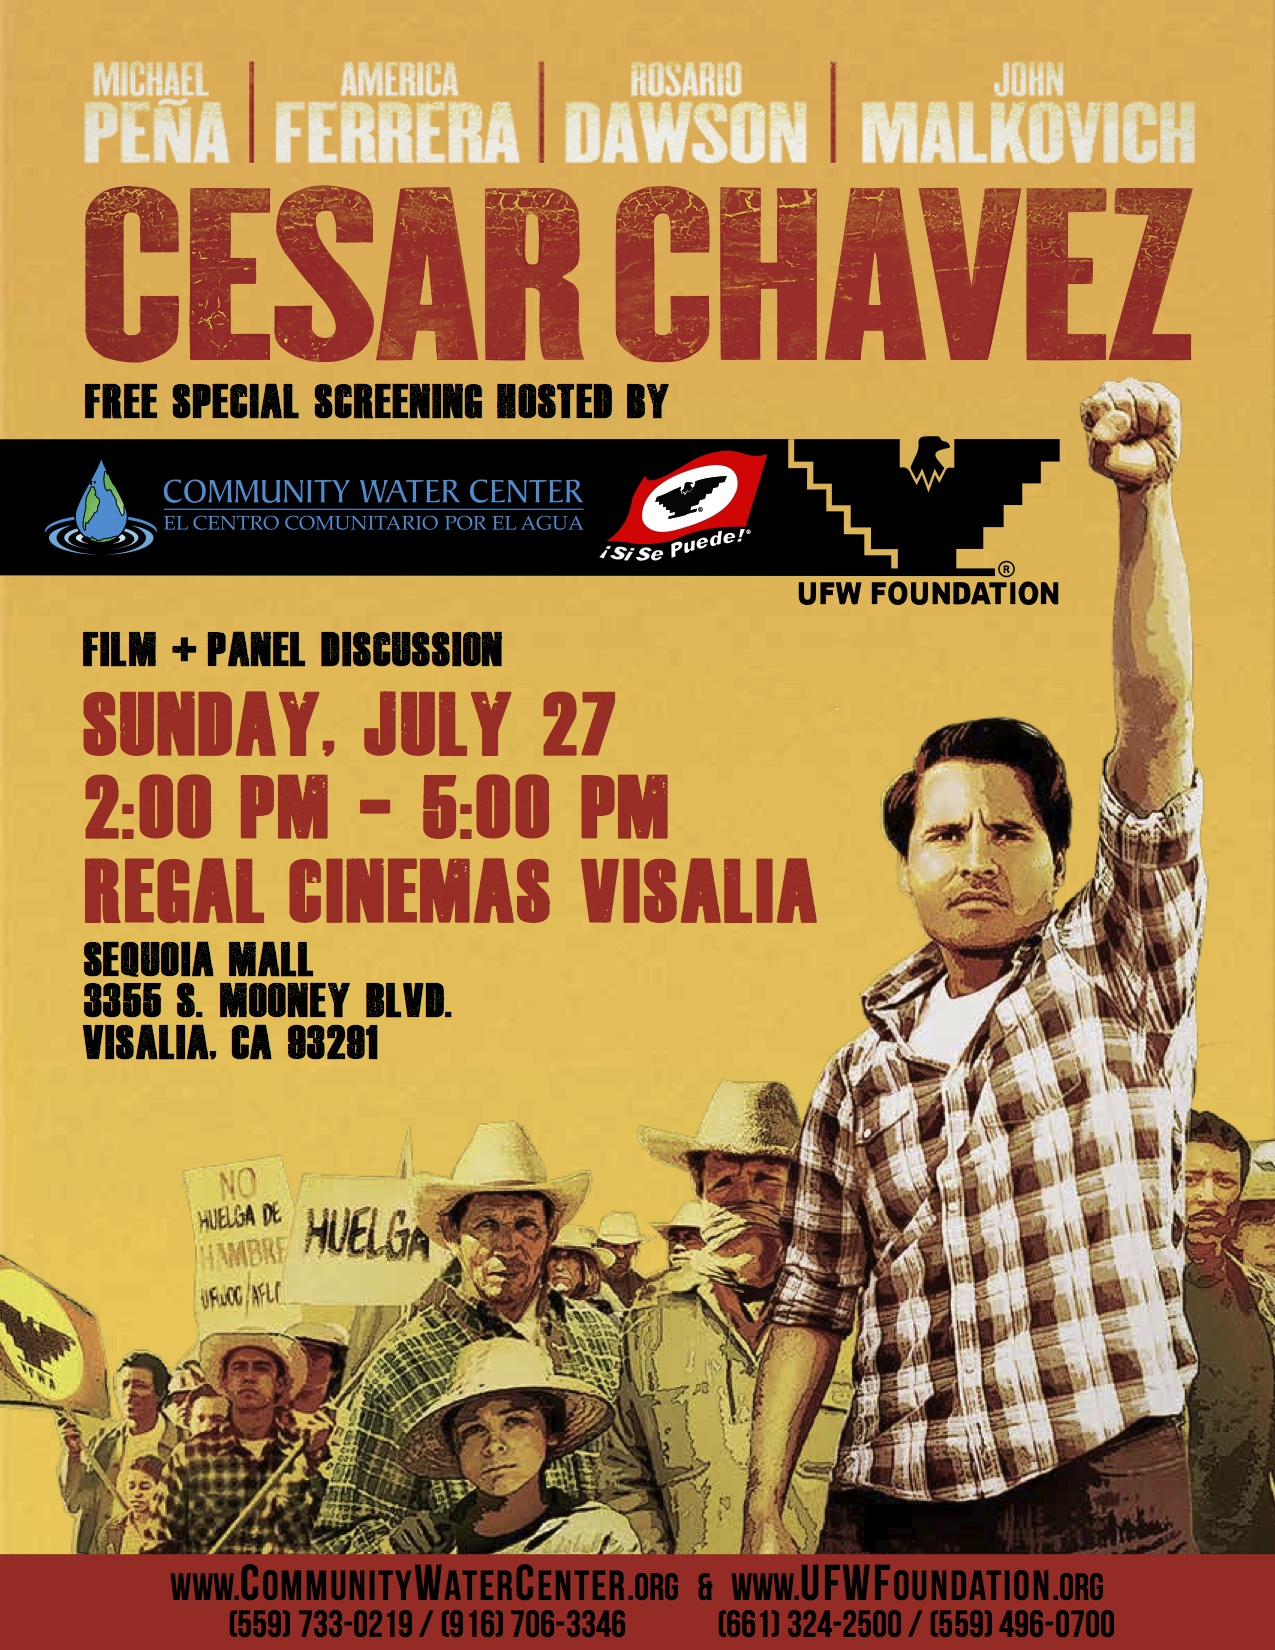 the life of cesar chavez As farmworkers continue to fight for fair wages and safe working conditions across the united states, we look at the life of legendary organizer cesar chavez.